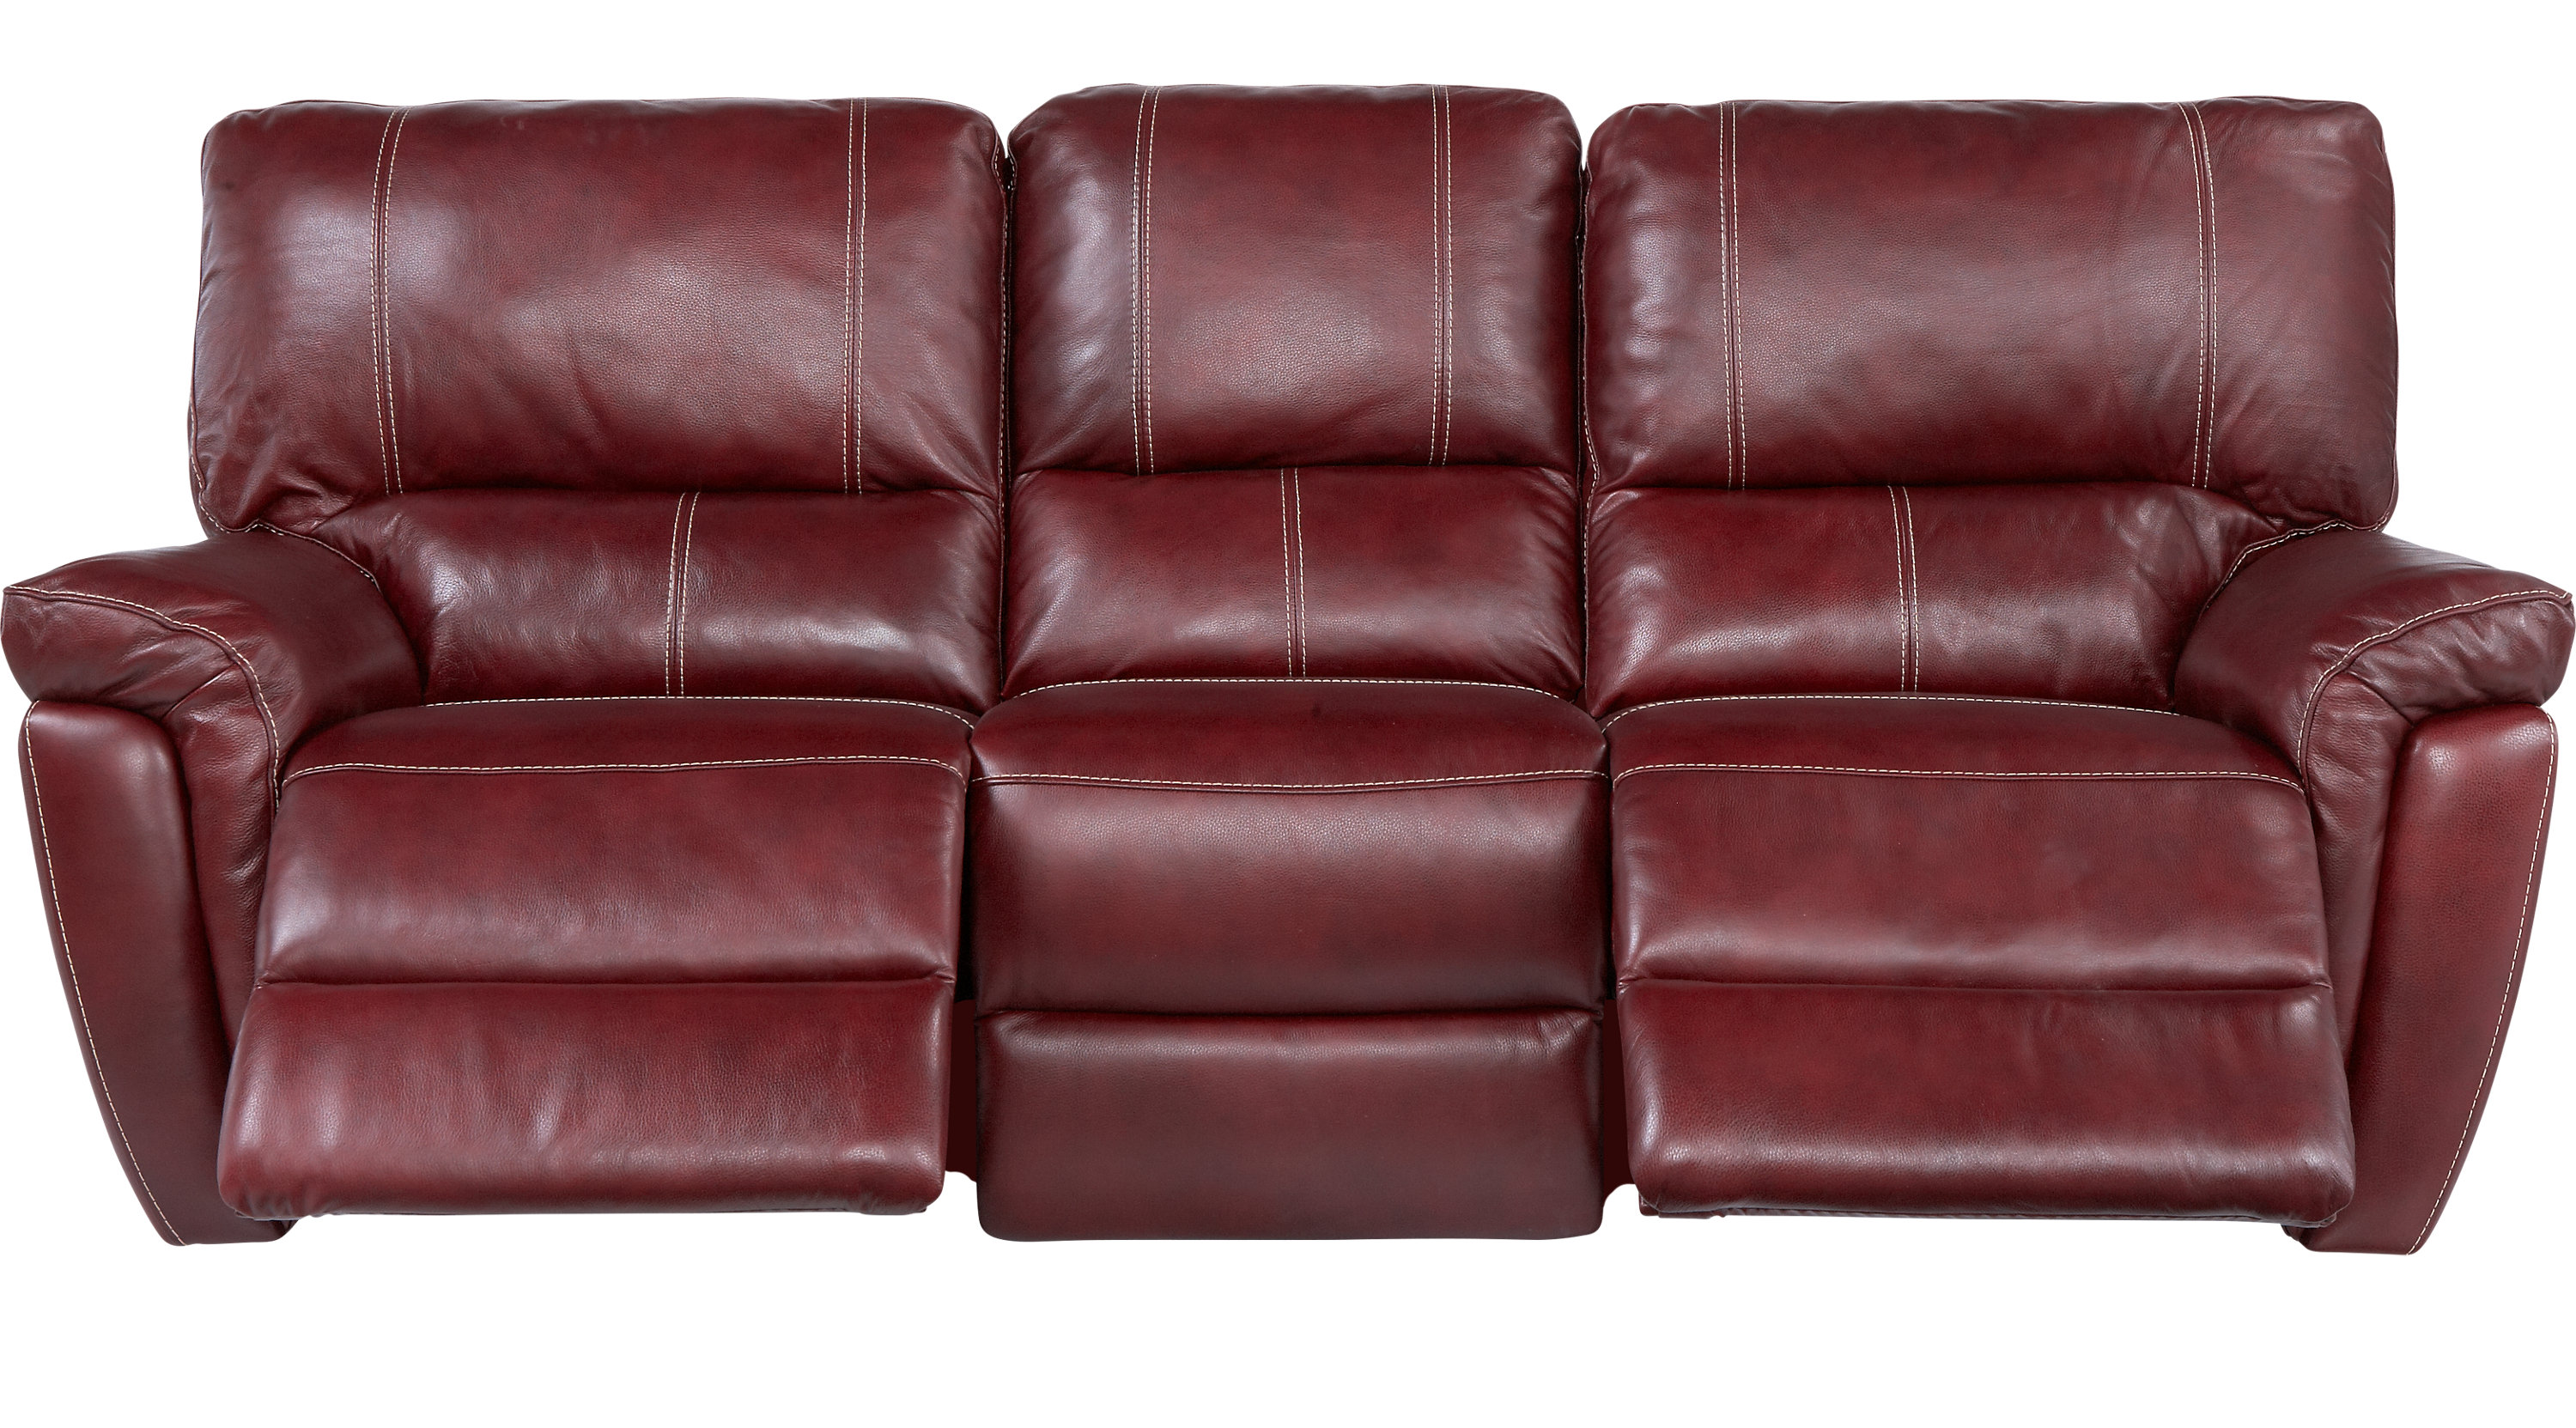 Browning Bluff Red Leather Reclining Sofa Contemporary